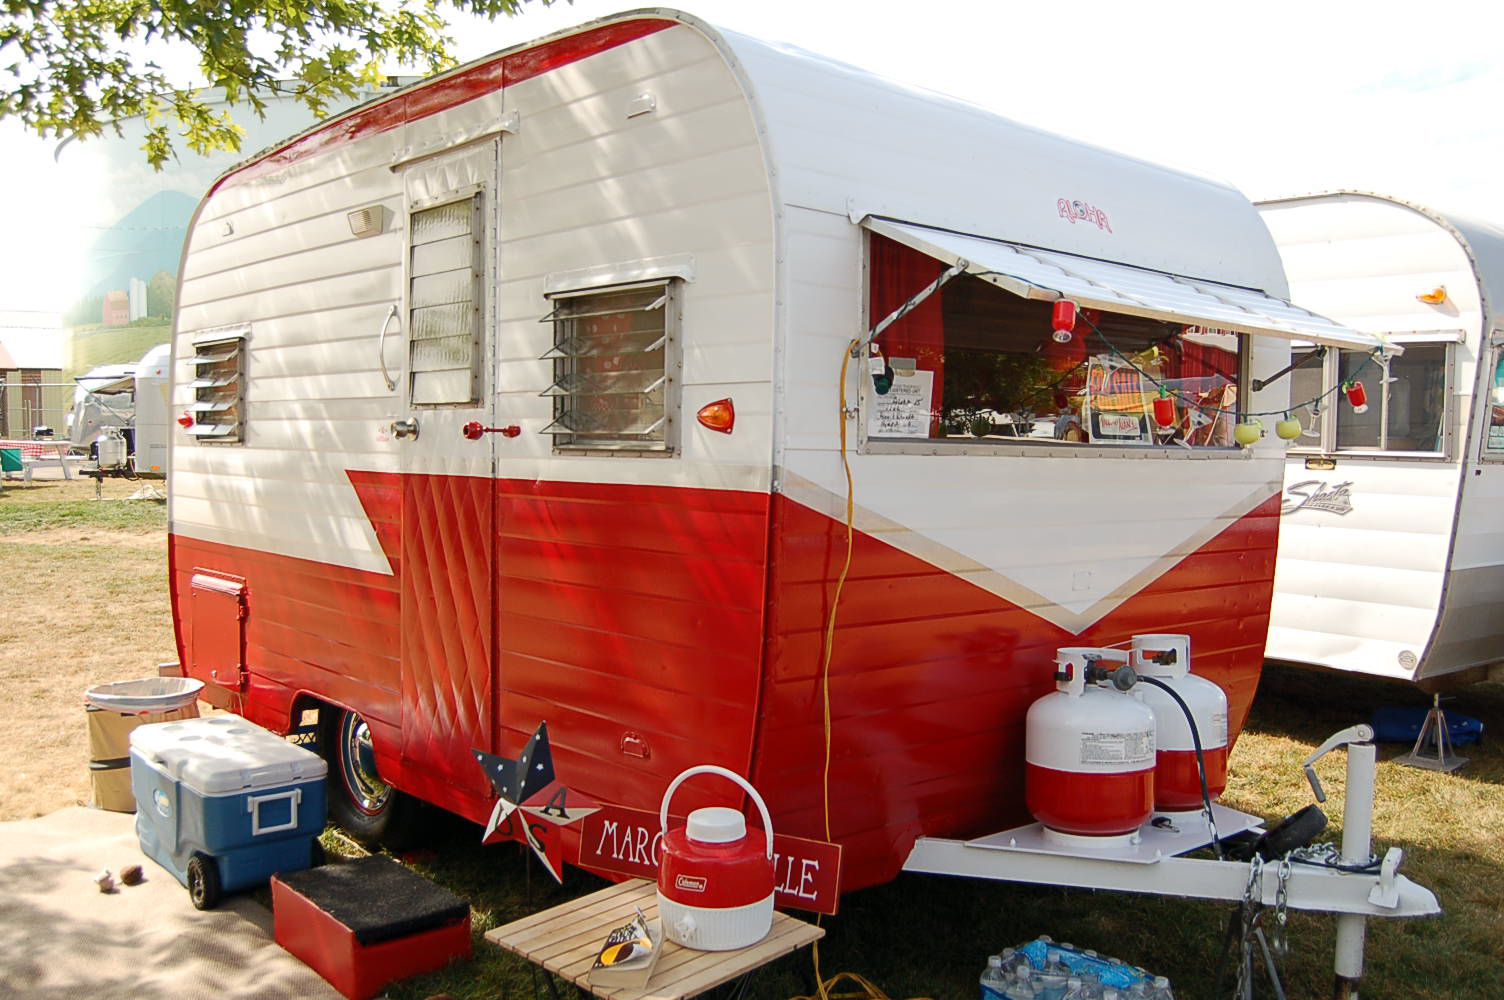 Vintage Aloha Trailer Pictures And History From